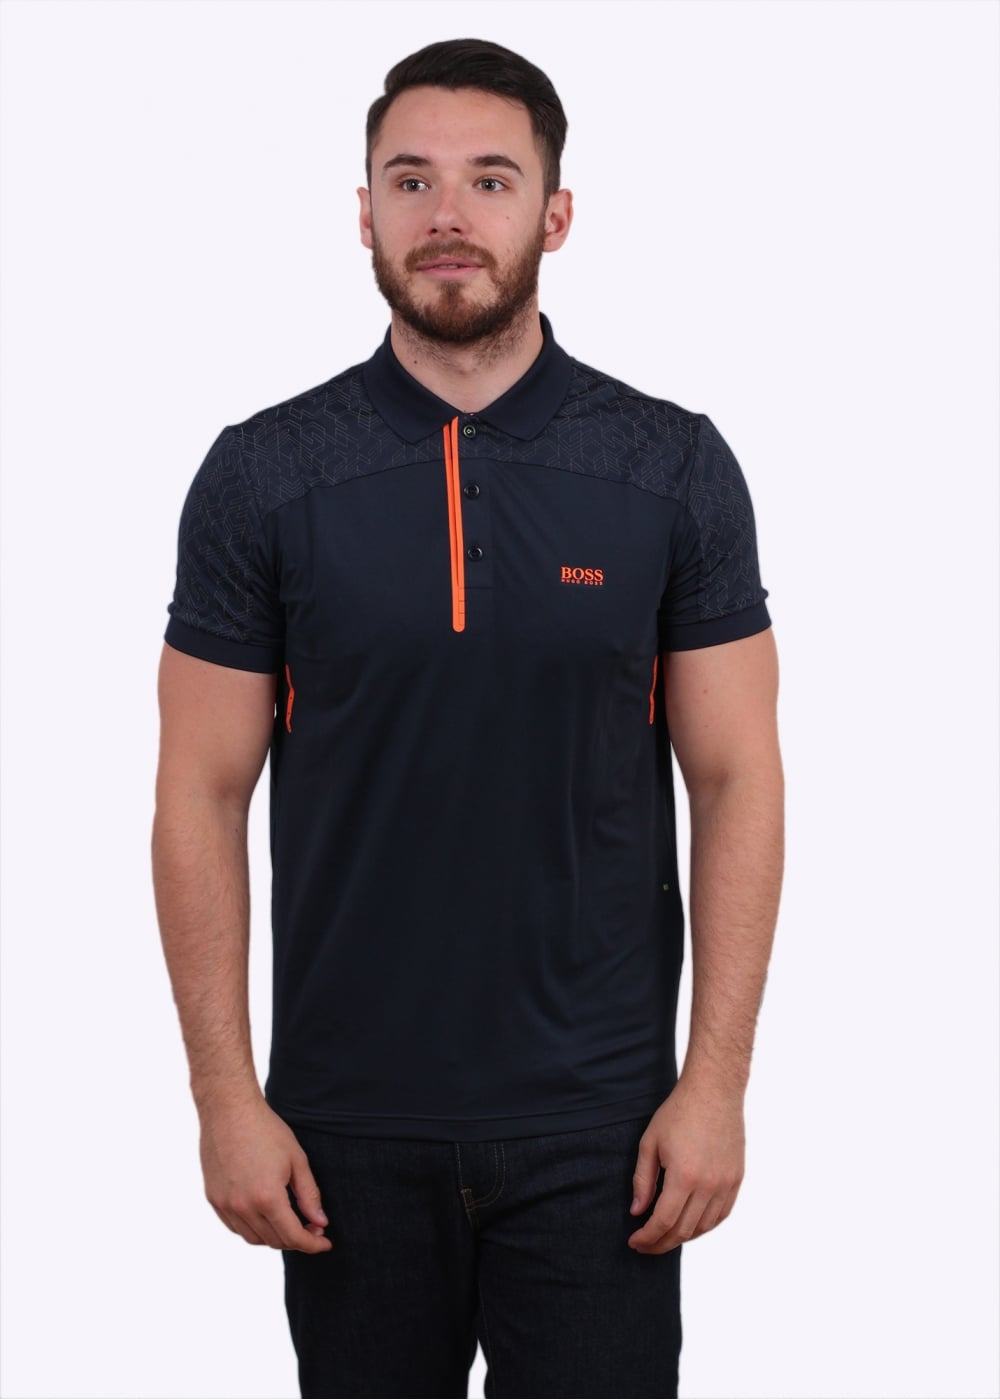 Hugo boss green pavotech polo shirt navy polo shirts for Hugo boss green polo shirt sale